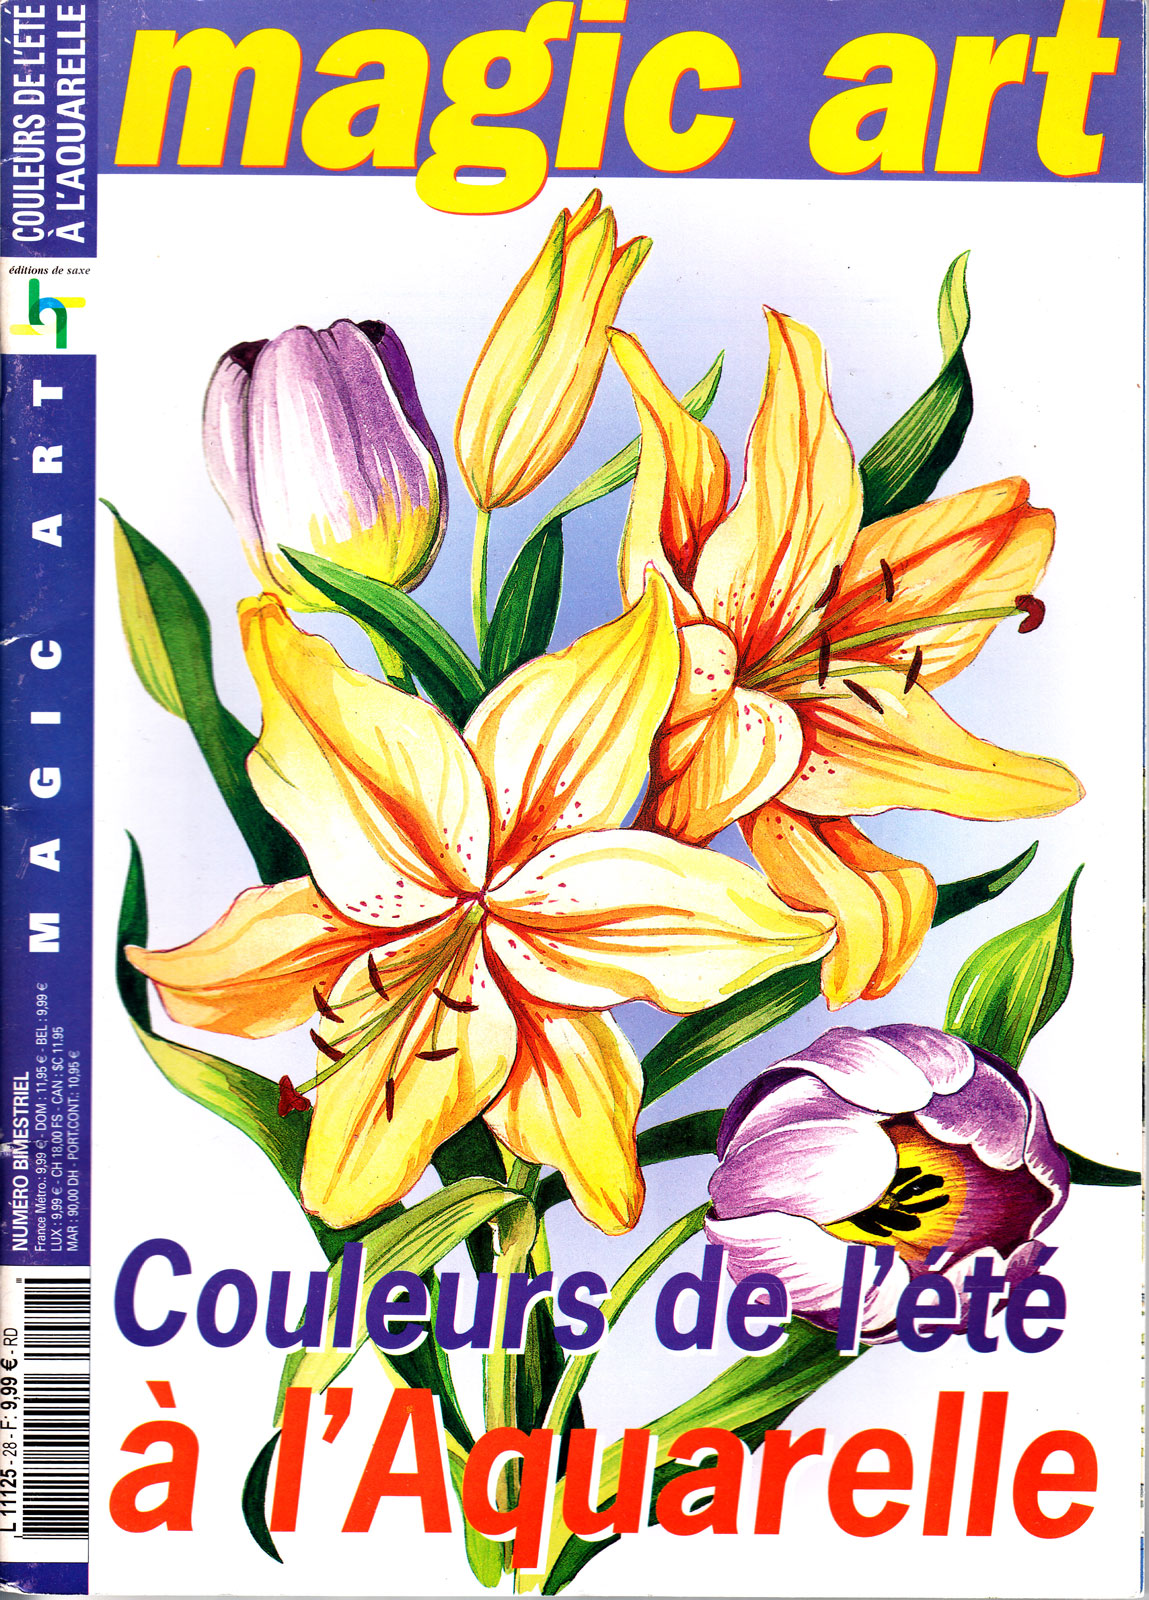 Couleurs de l\'été à l\'aquarelle - Magic art - N°28